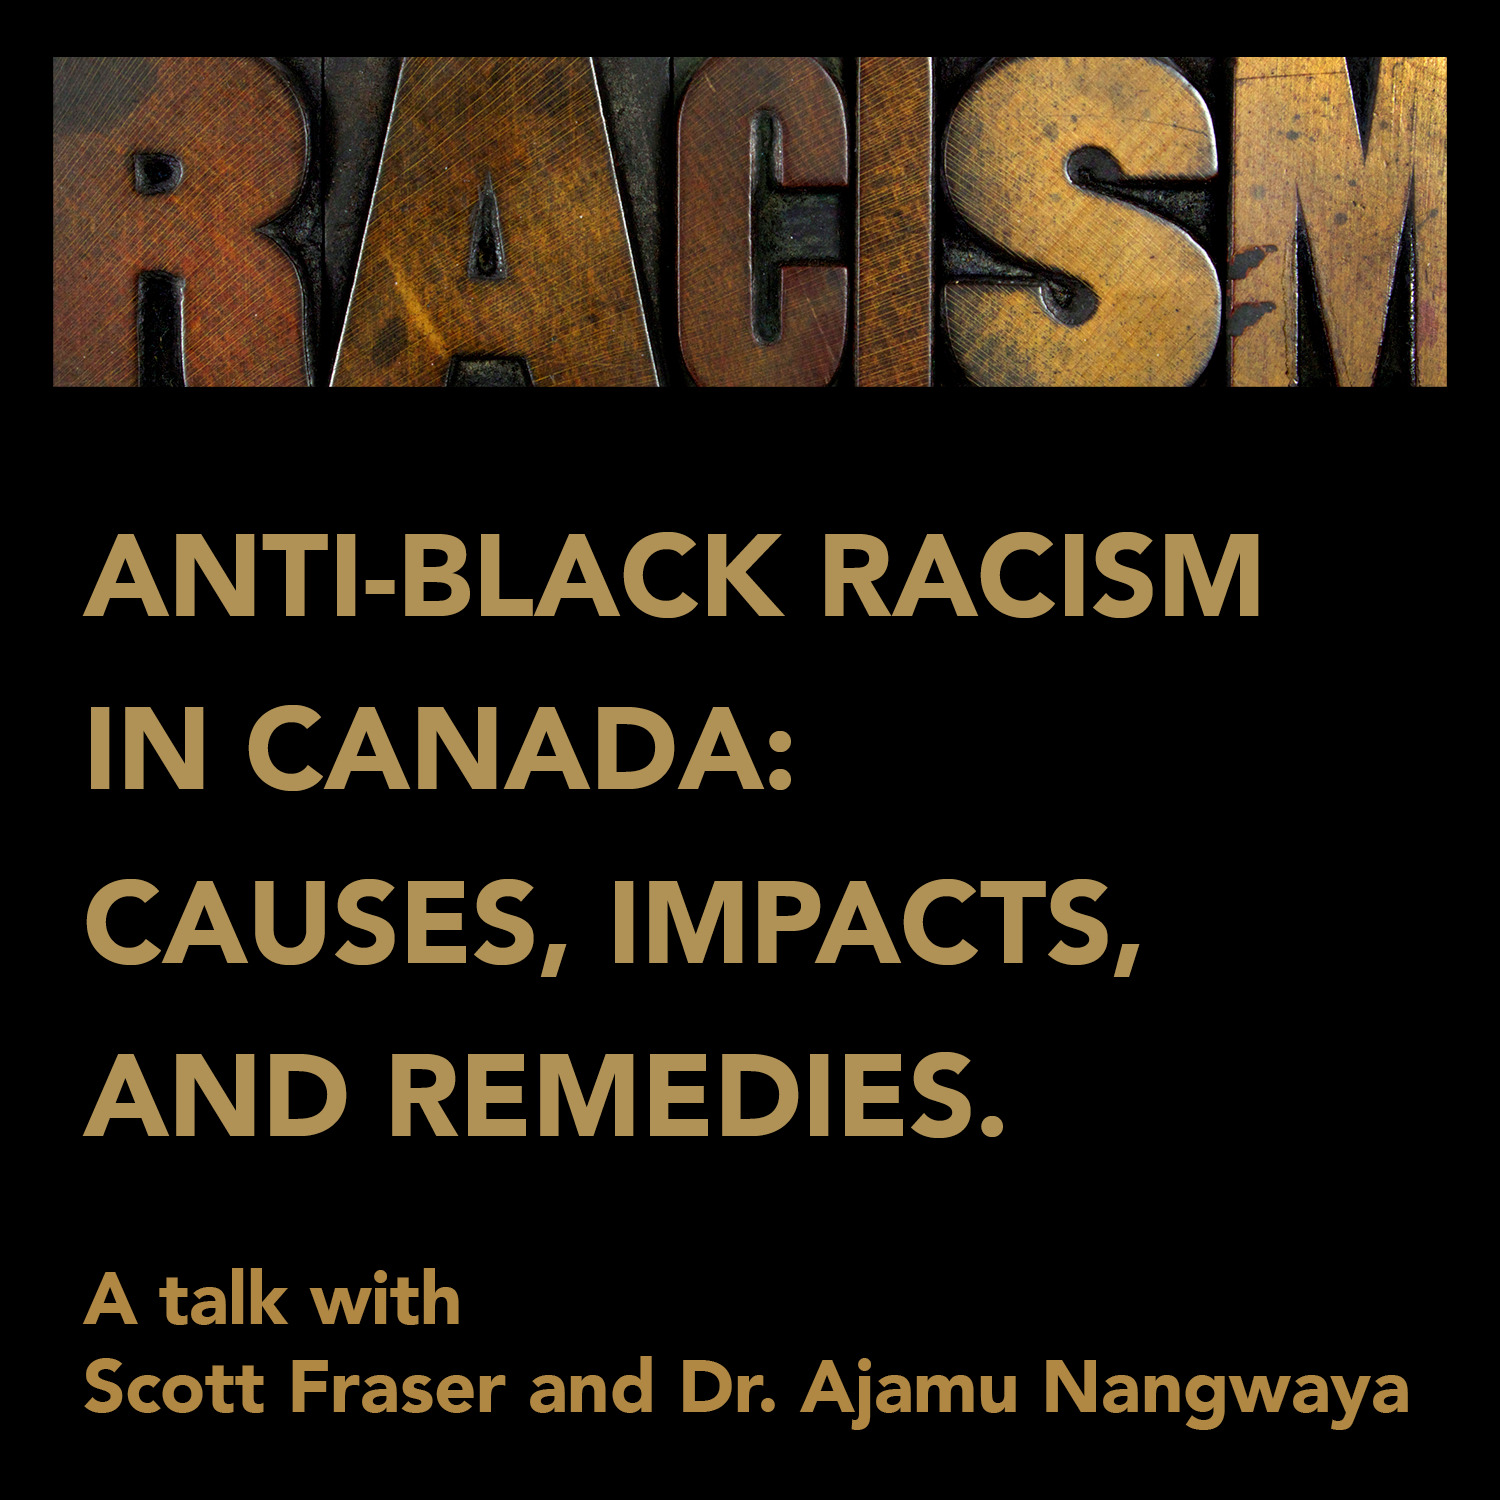 Anti-Black Racism In Canada